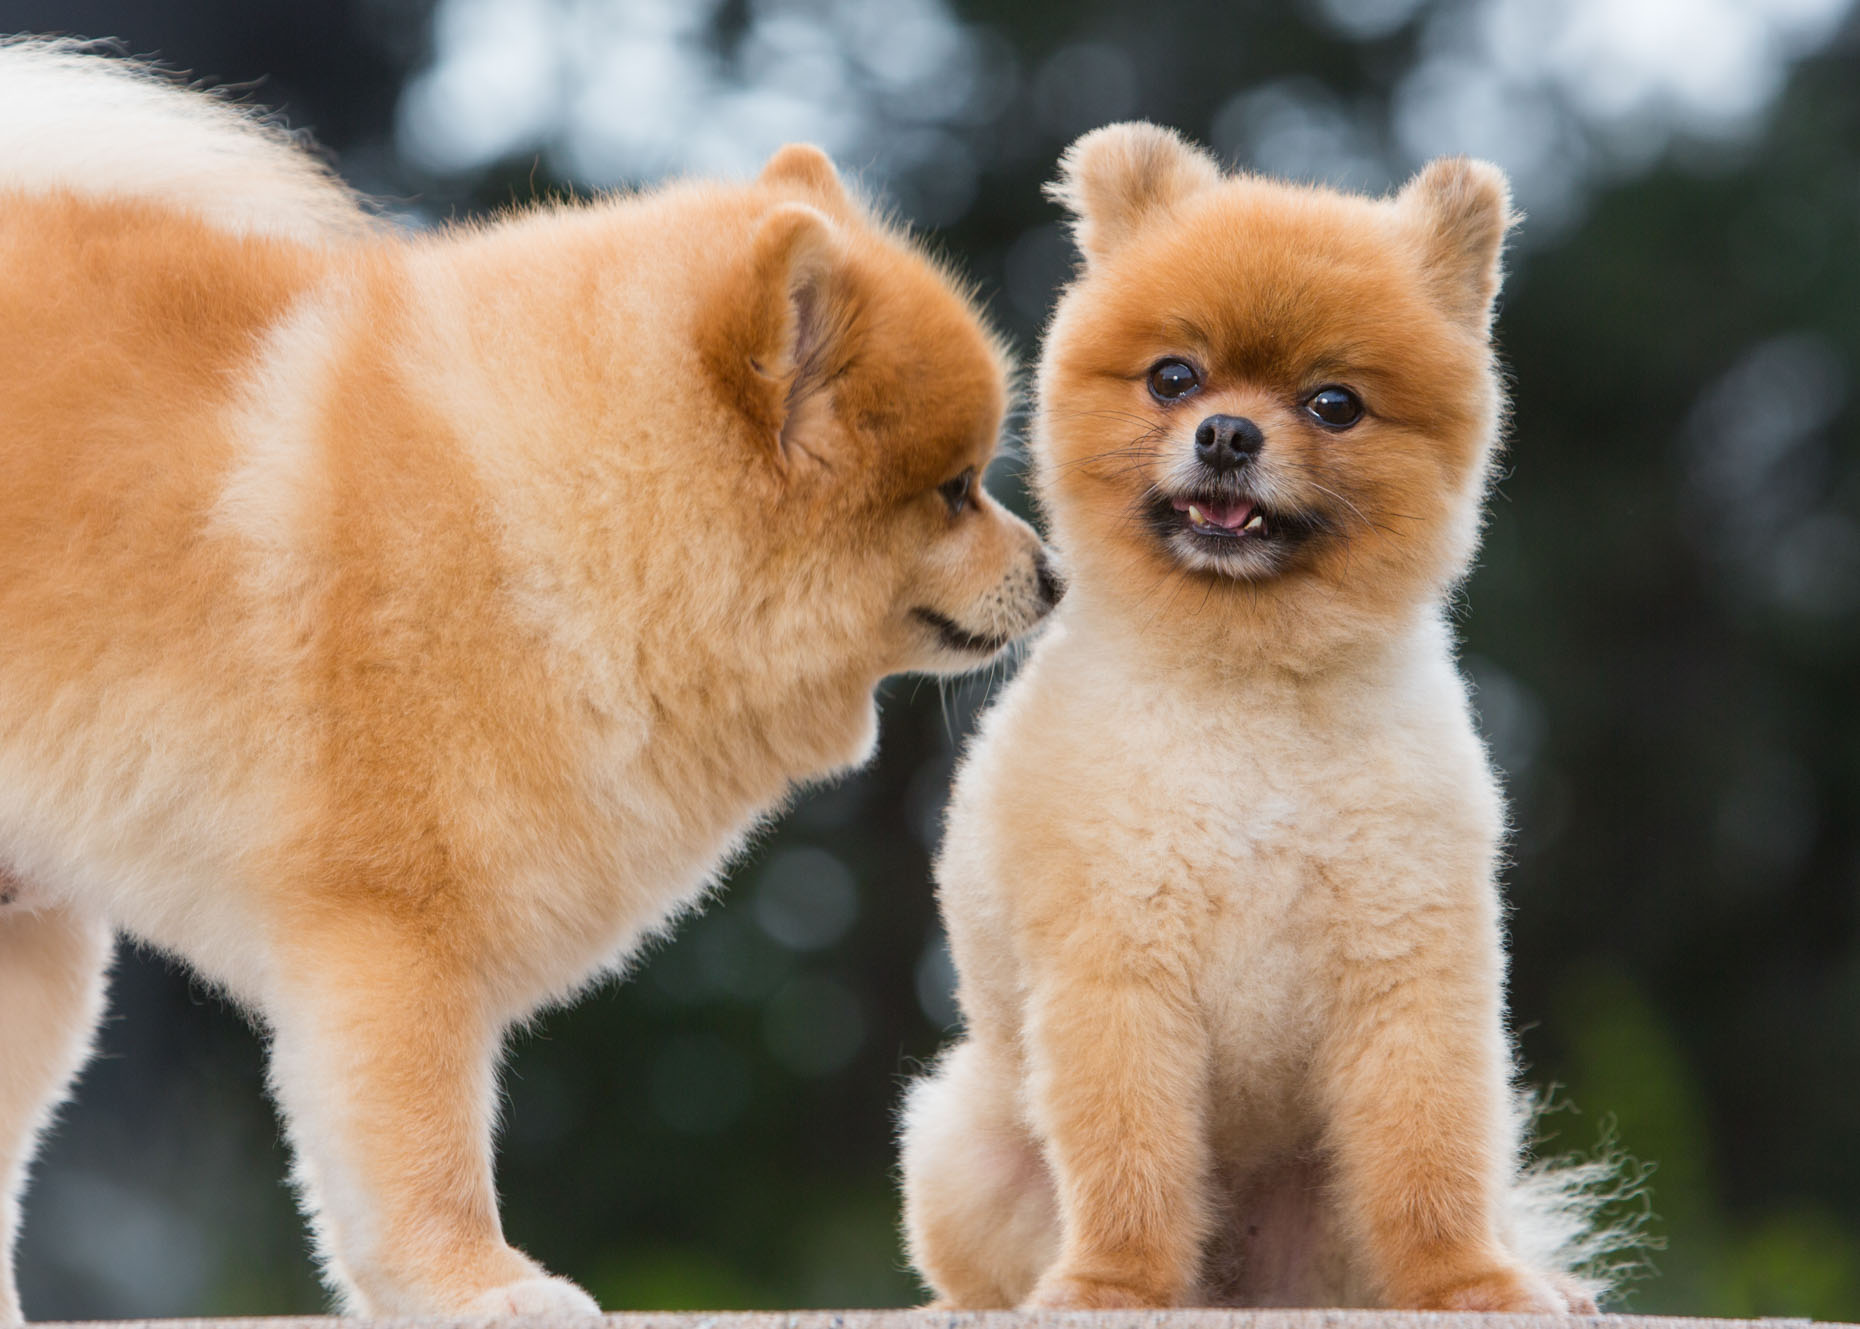 Dog and Pet Photography  |  Two Pomeranian Dogs by Mark Rogers